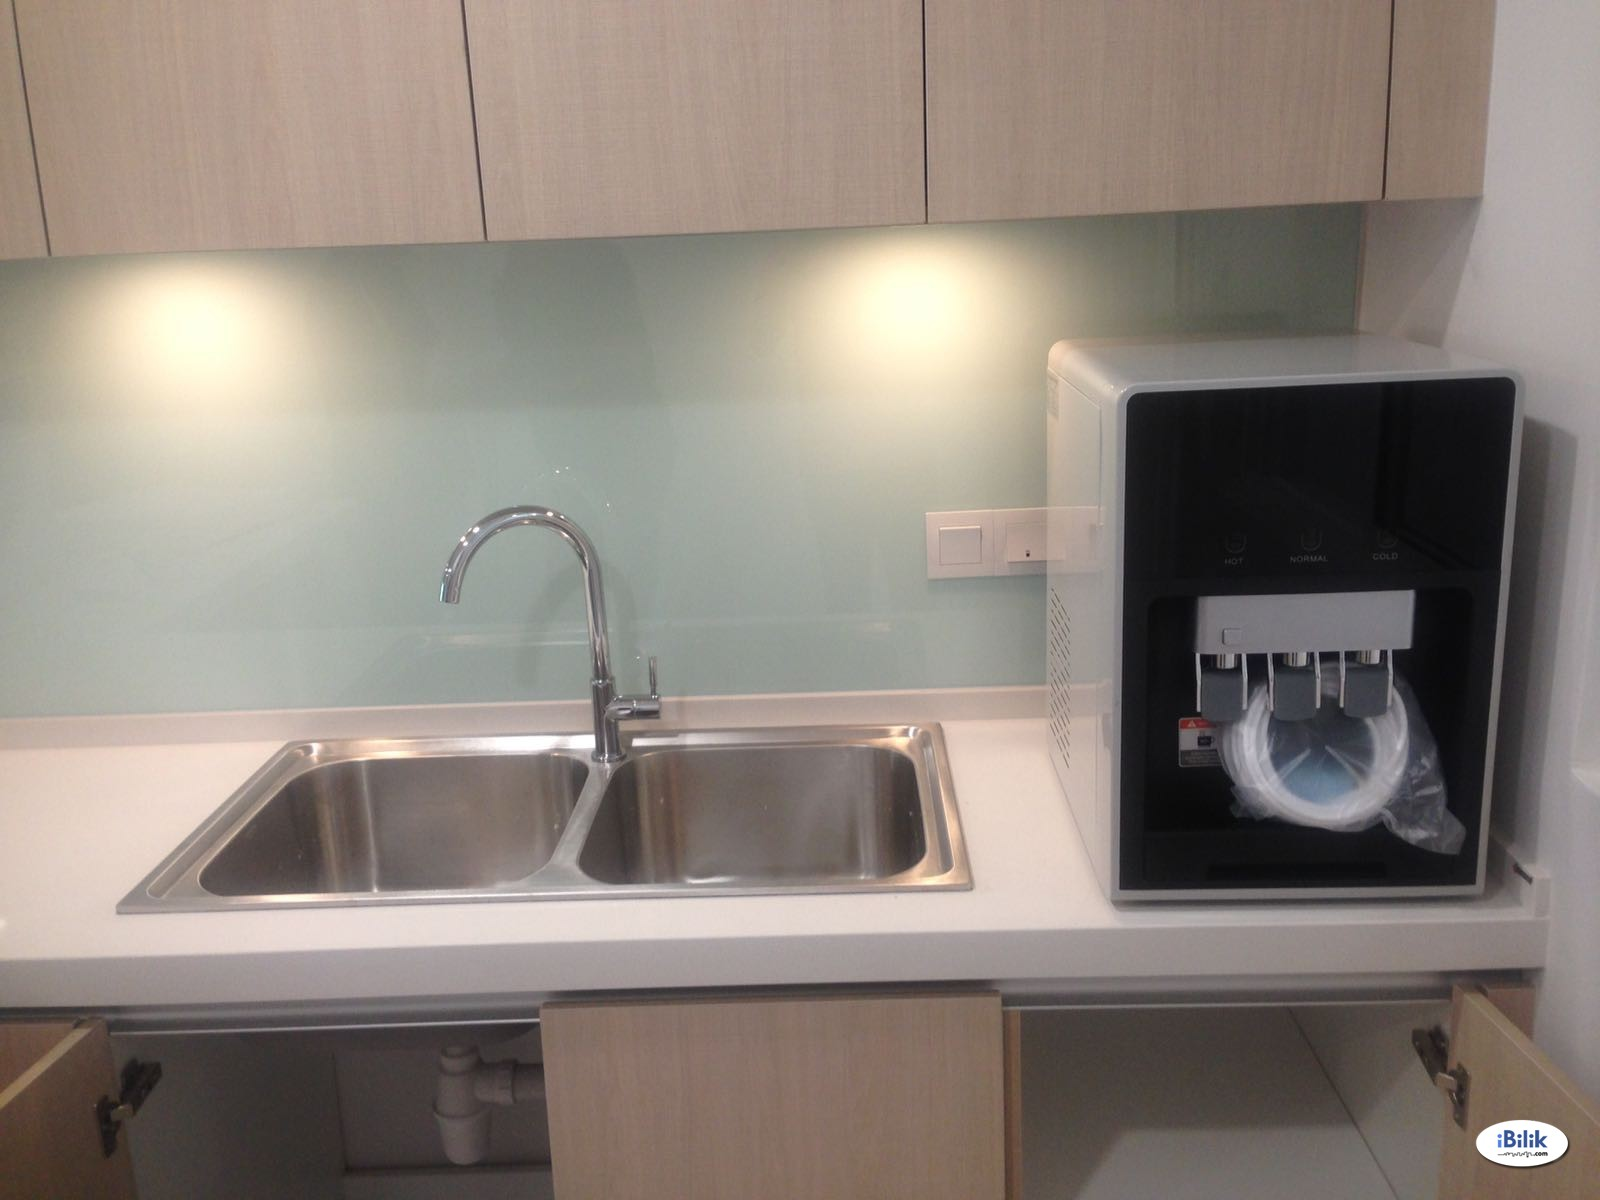 Bandar Utama, Nice & Clean Fully Furnished Room + Private Attached Bathroom (Inclusive Utilities & WiFi)